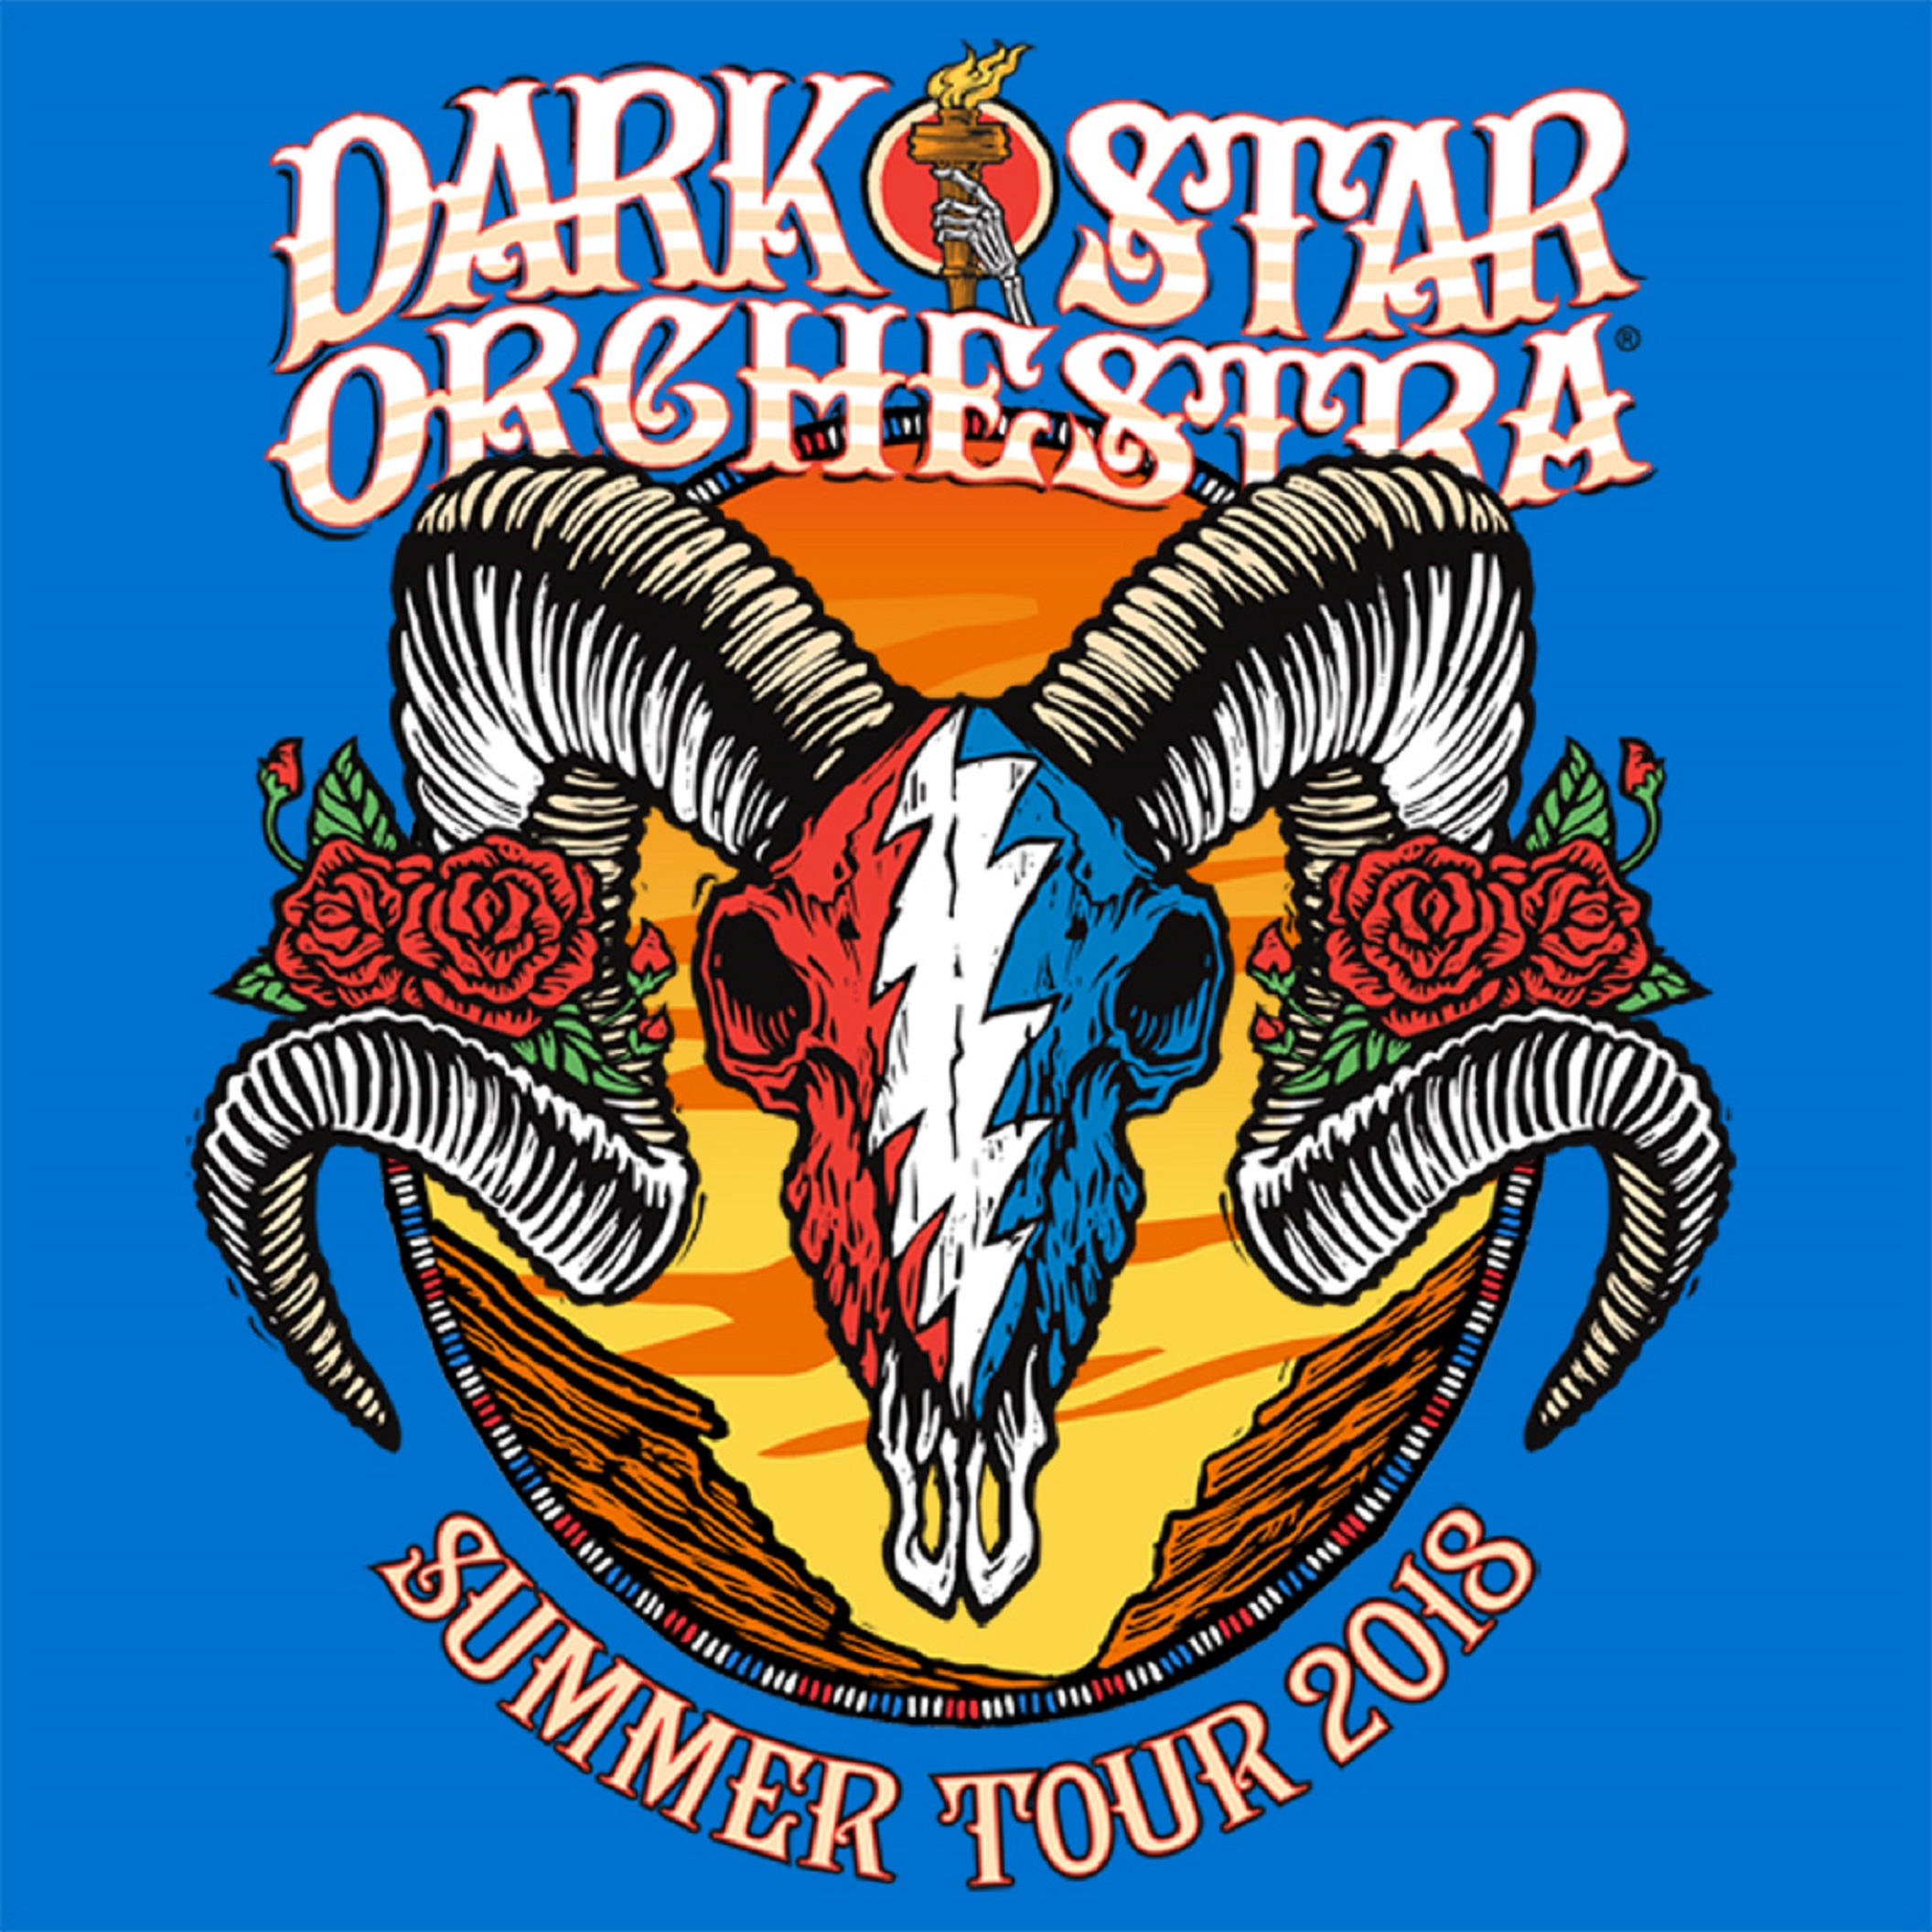 Dark Star Orchestra Announces Summer Tour 2018